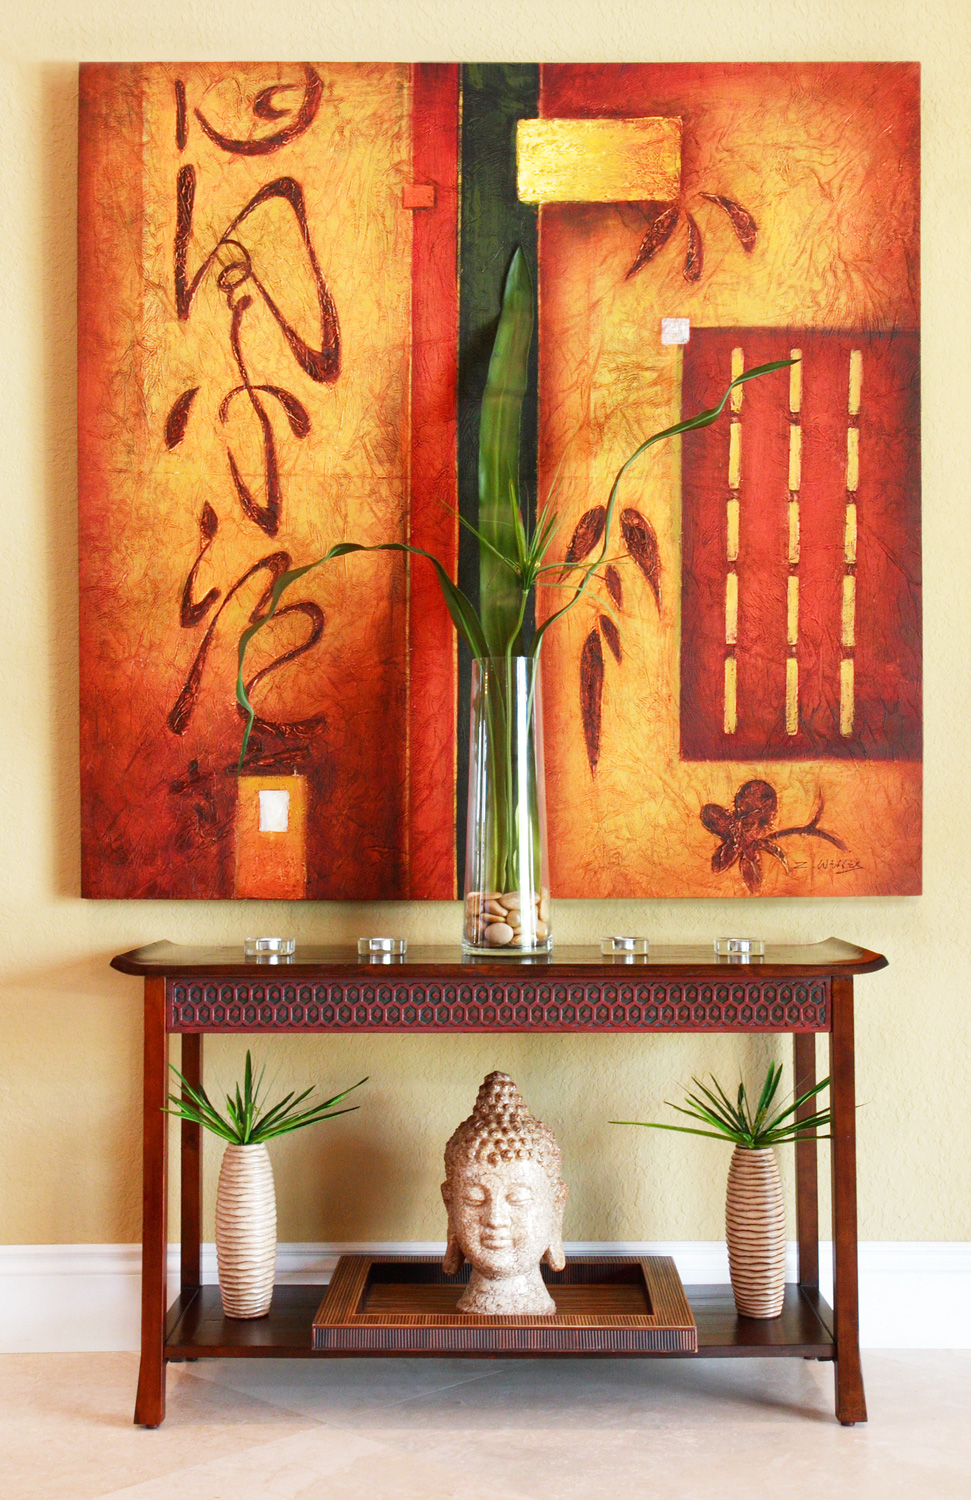 side-table-zen-scene-modern-art-painting-acres.jpg